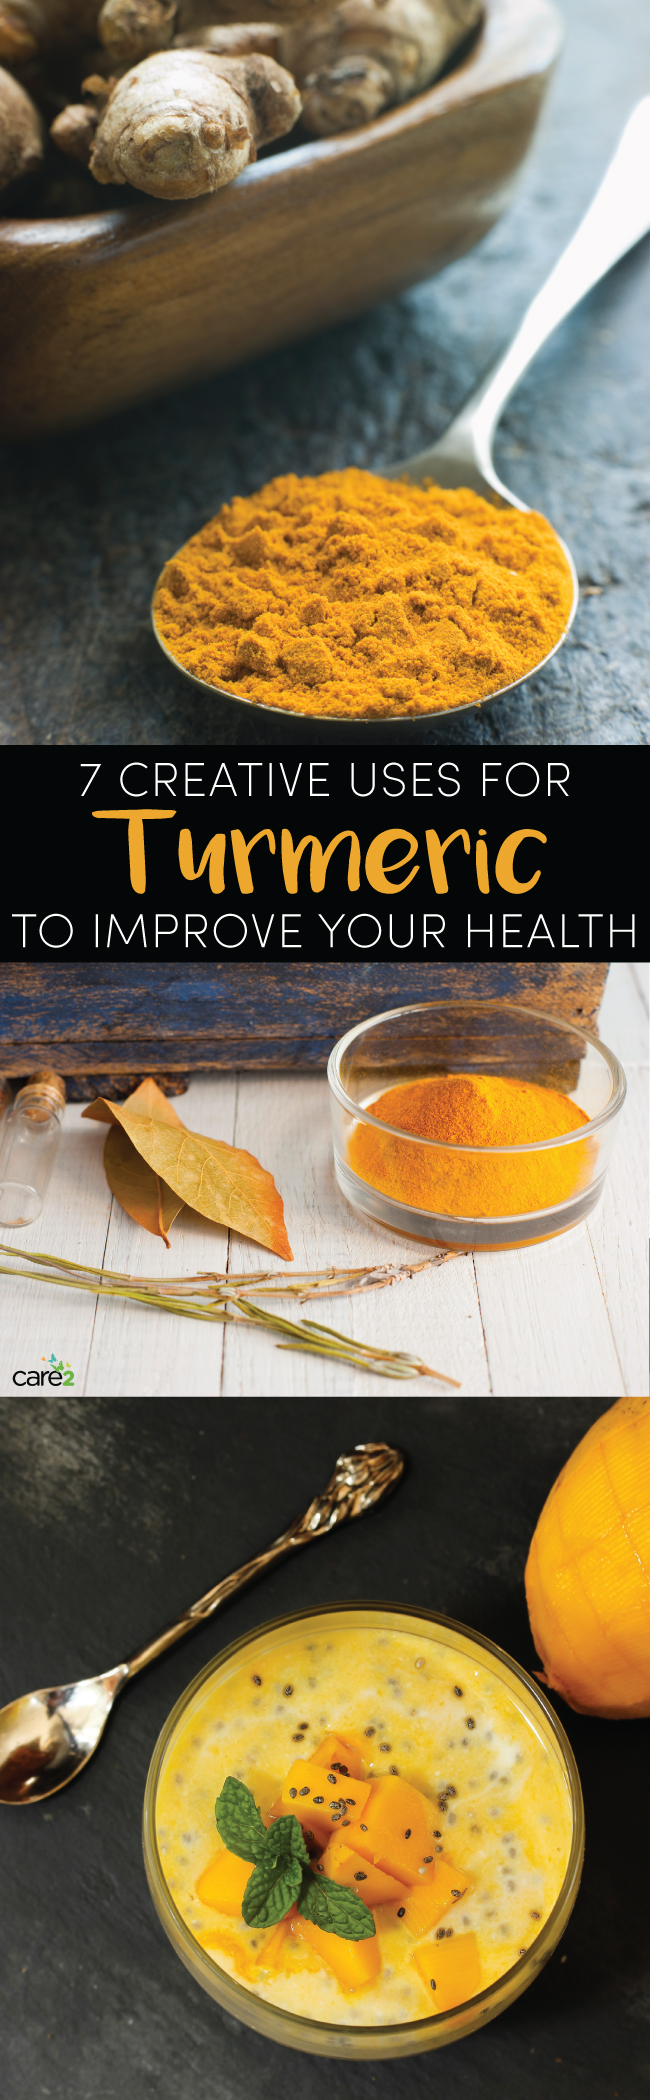 7 Creative Uses for Turmeric to Improve Your Health